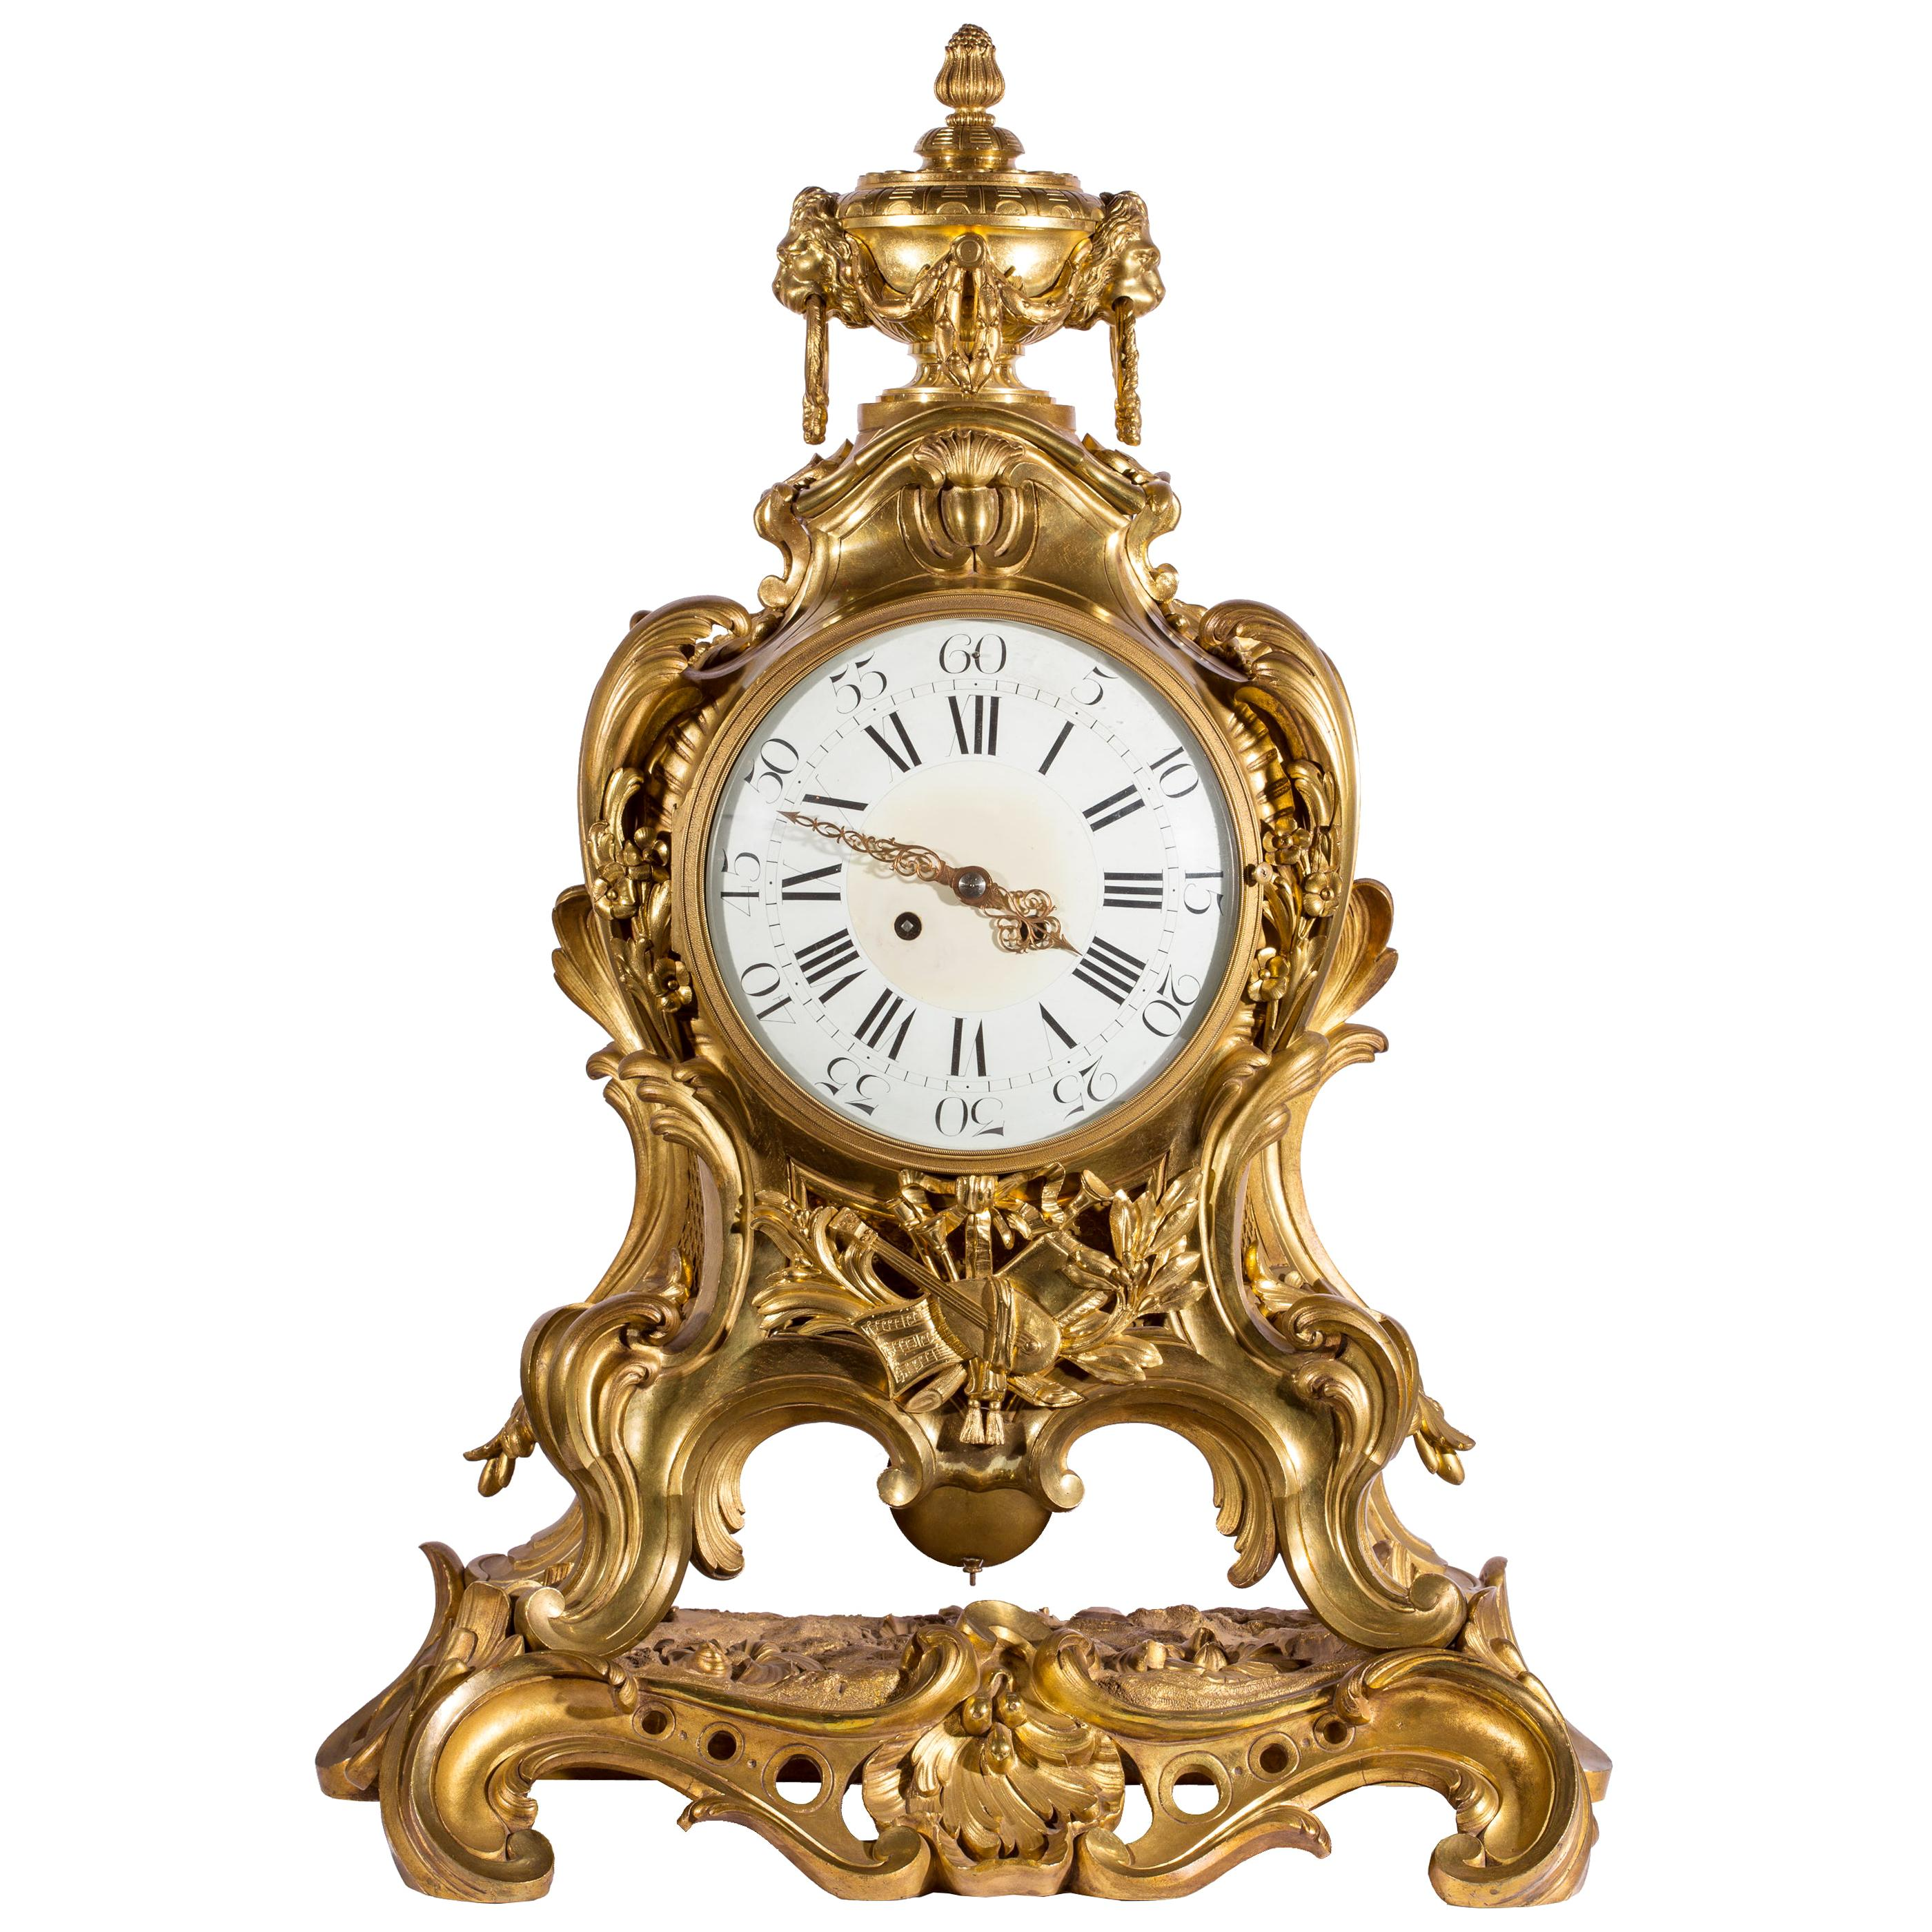 19th Century French Ormolu Mantel Clock with Musical Motif & S. Marti Movement